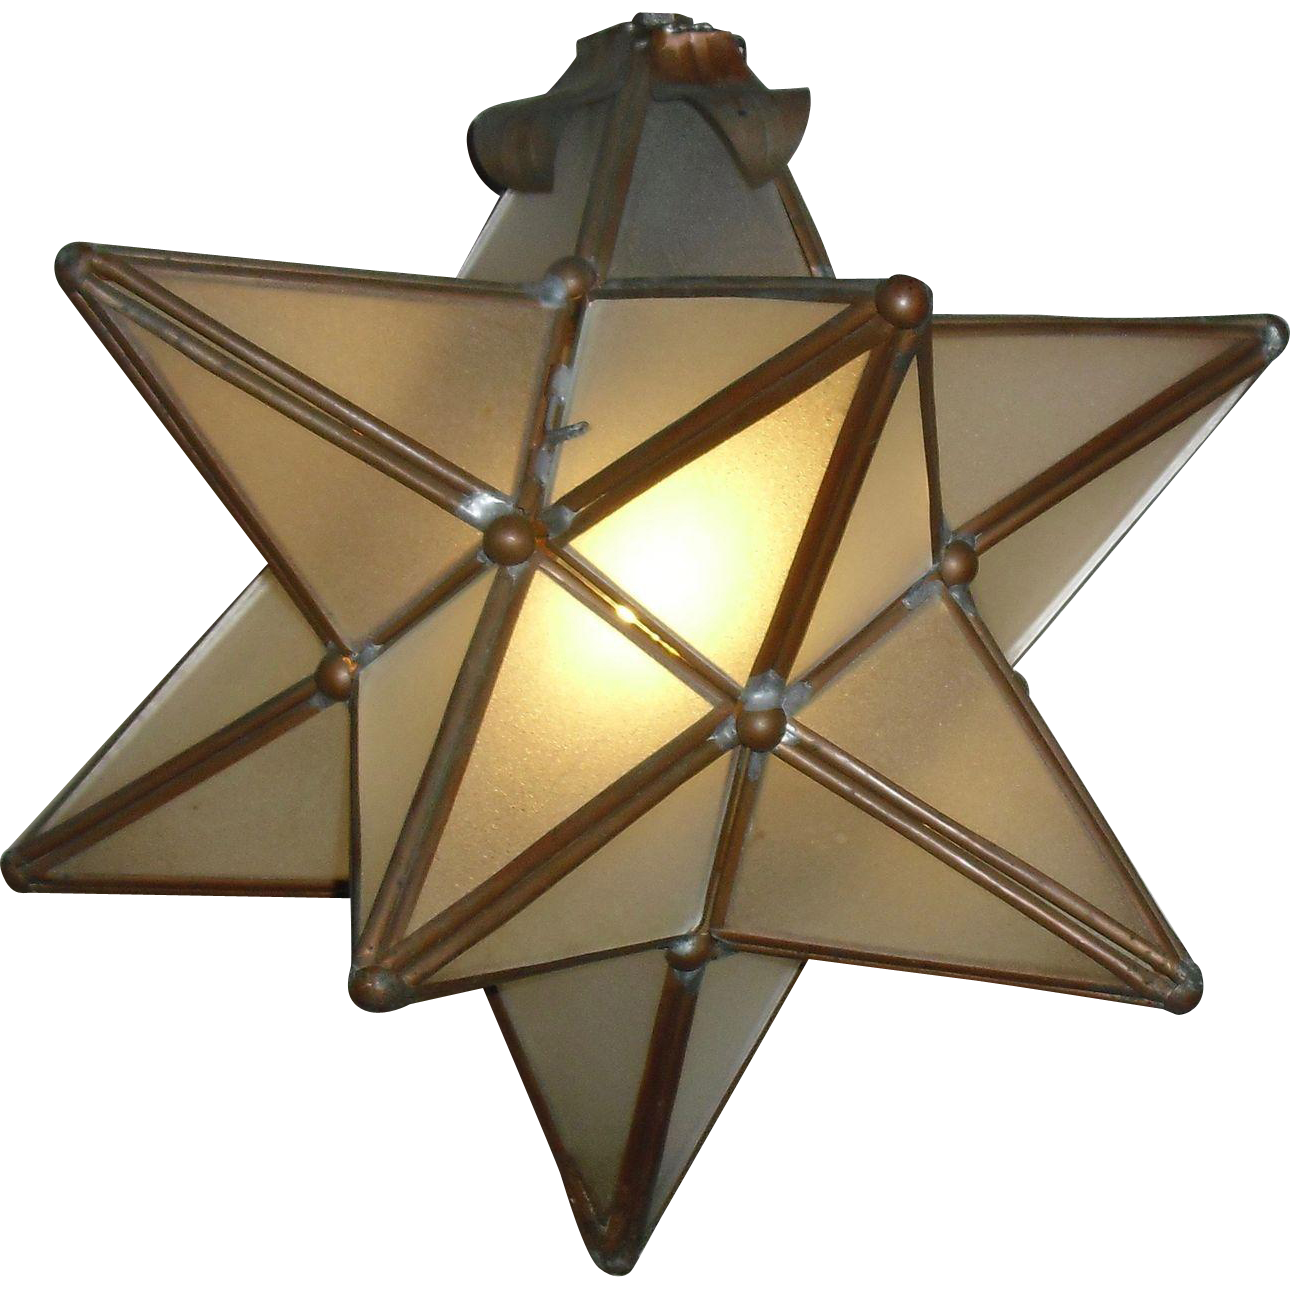 12 Point Star Pendant Light Fixture With Leaded Frosted Glass From